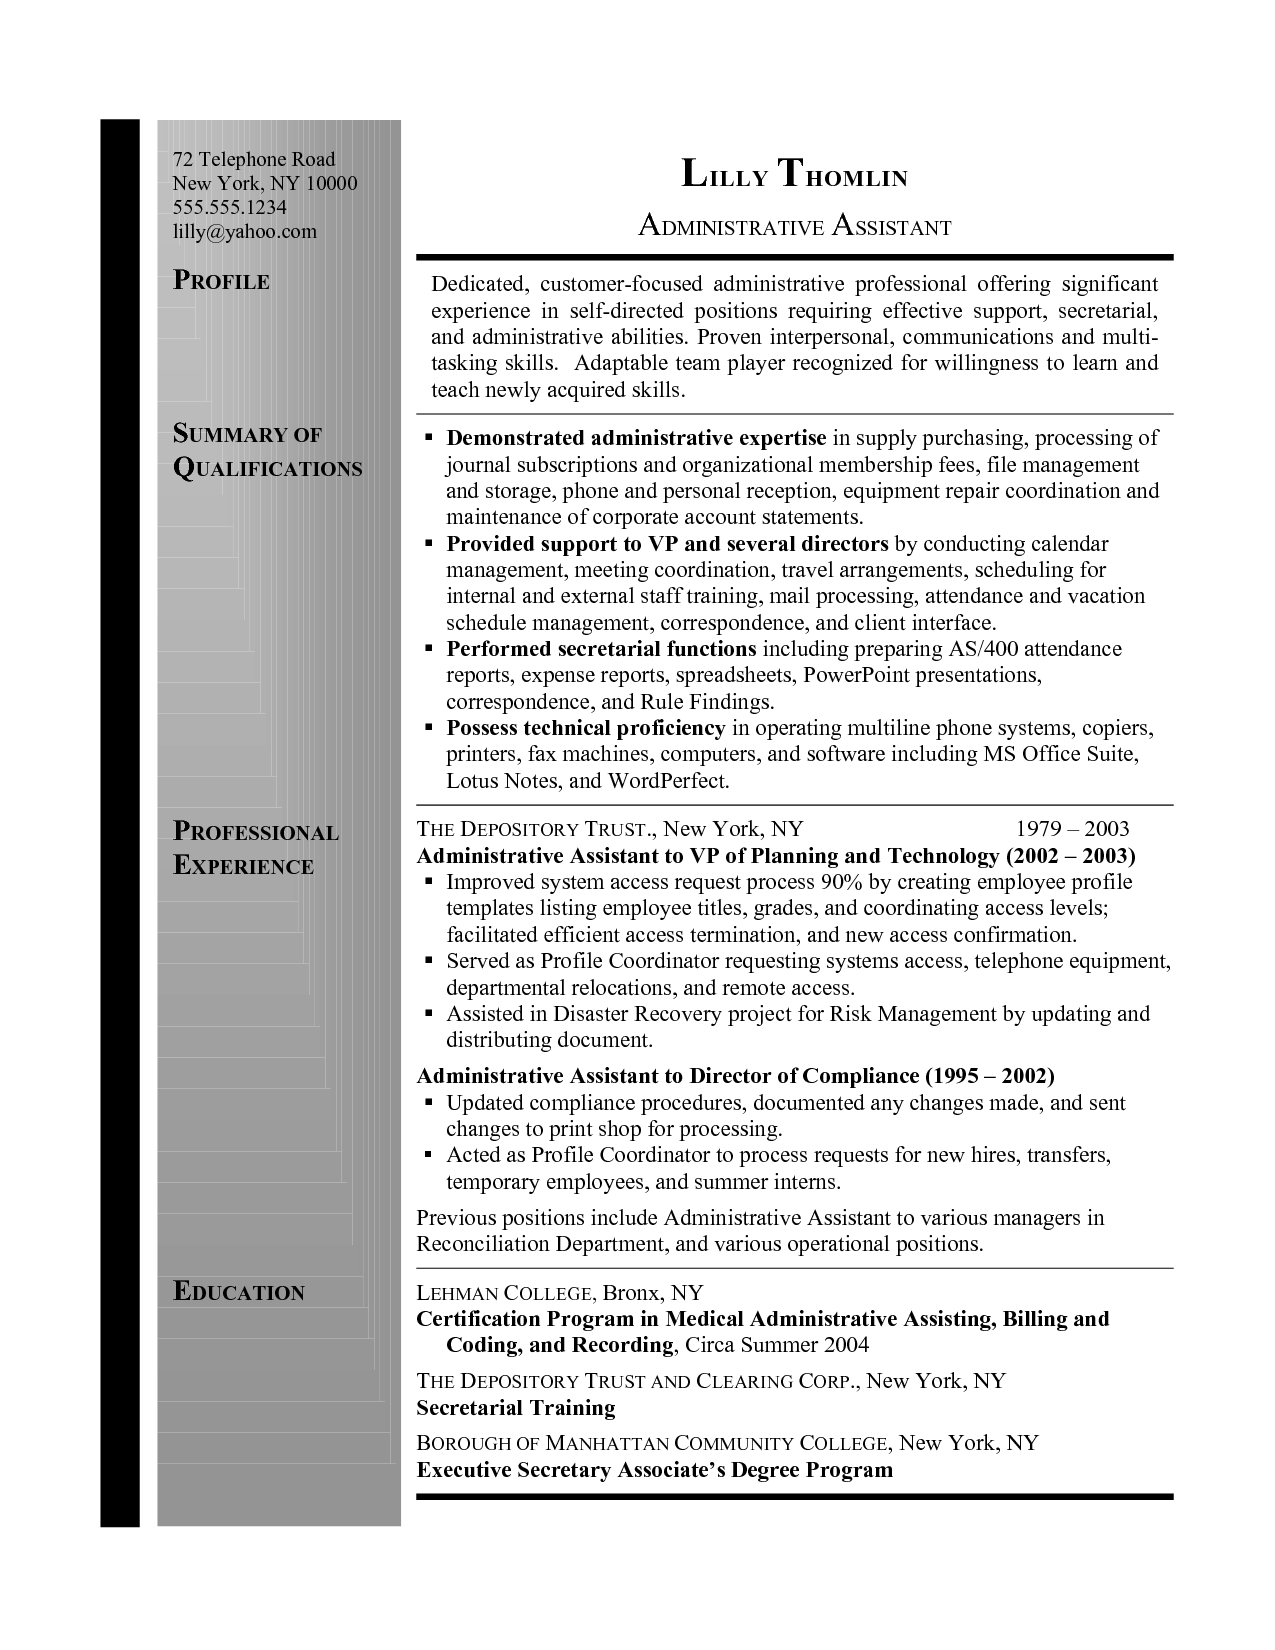 resume summary administrative assistant - Resume Skills For Administrative Assistant Position